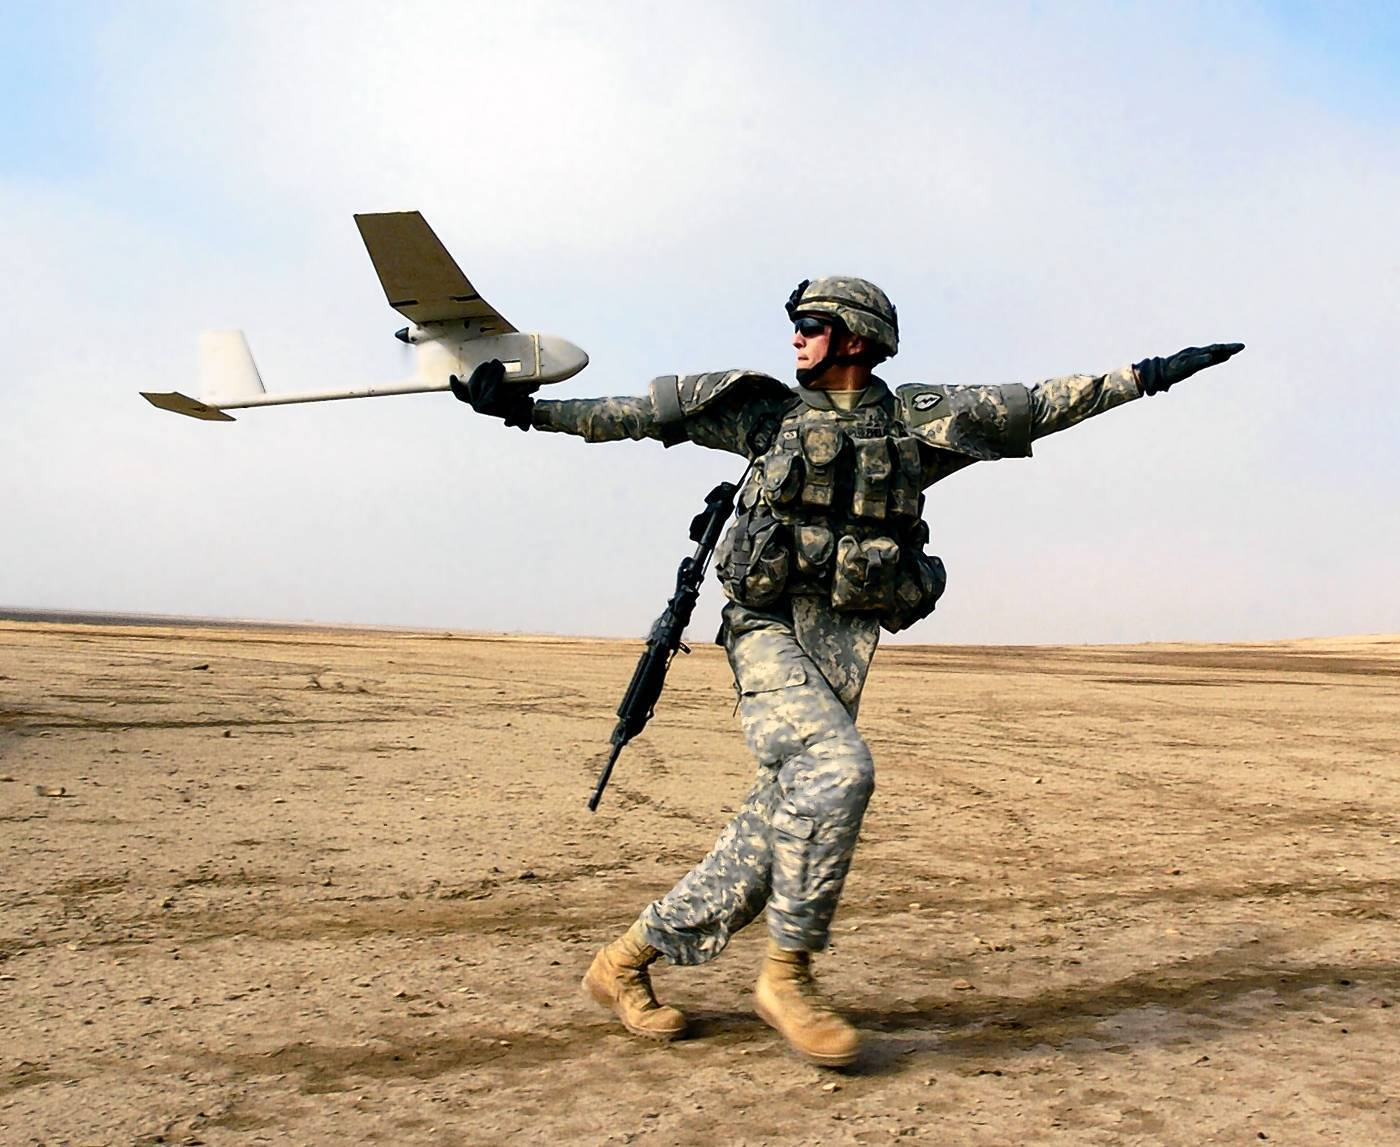 Lockheed Martin Global Training & Logistics in Orlando develops training technology for the Raven (pictured here), a tiny surveillance drone that can be hand-launched by infantry soldiers.